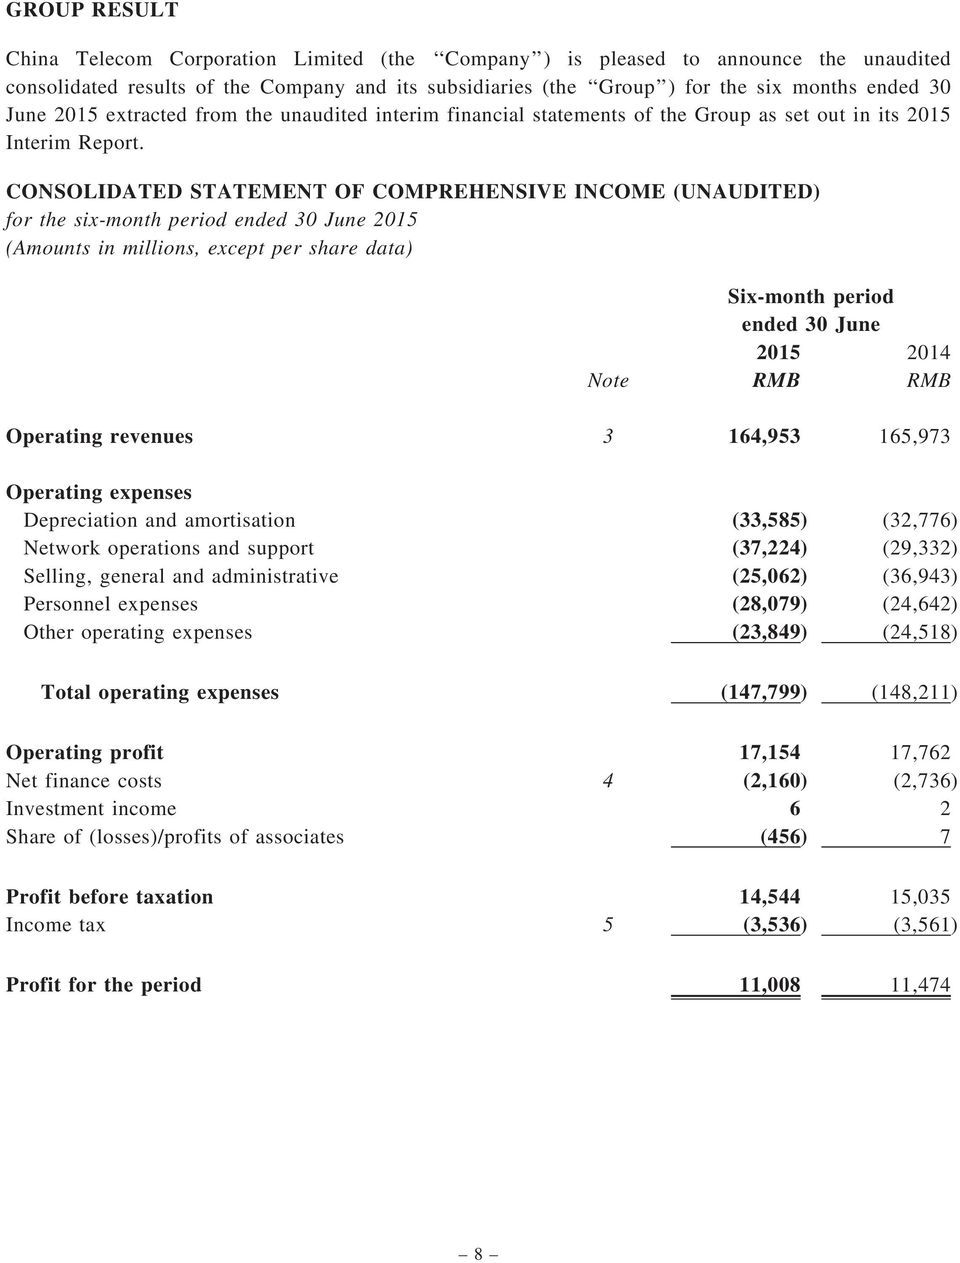 CONSOLIDATED STATEMENT OF COMPREHENSIVE INCOME (UNAUDITED) for the six-month period ended 30 June 2015 (Amounts in millions, except per share data) Six-month period ended 30 June 2015 2014 Note RMB